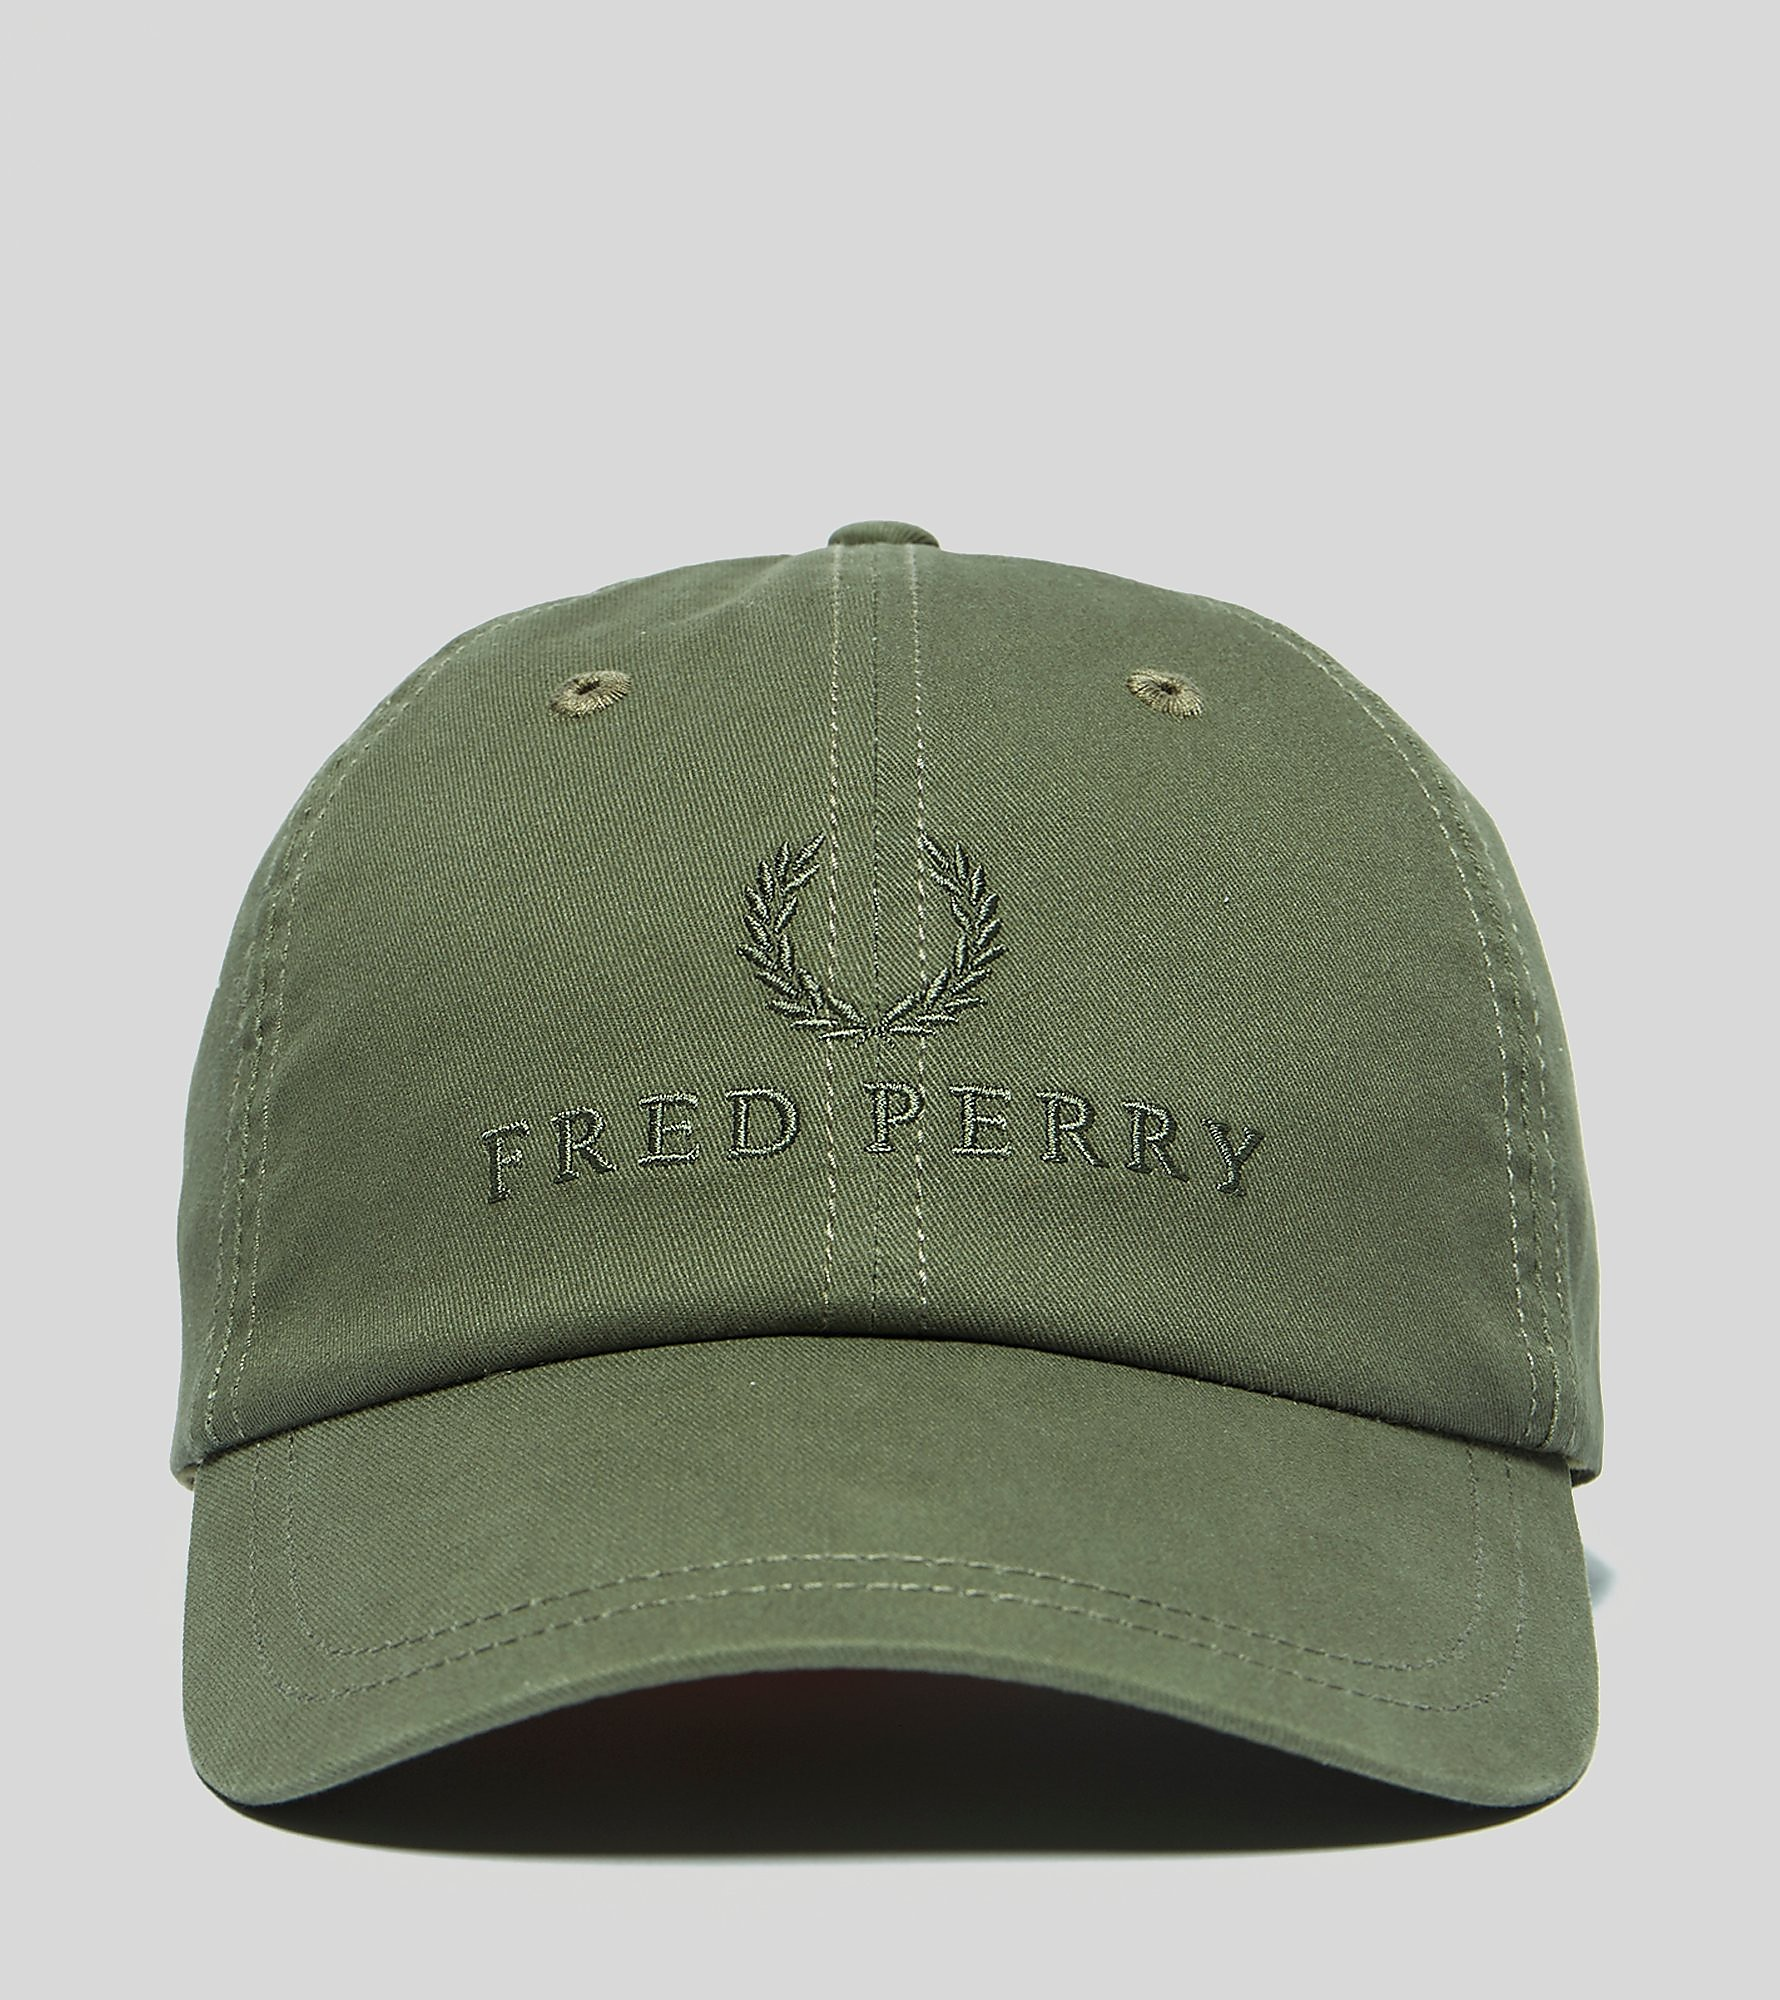 Fred Perry Tonal Tennis Cap